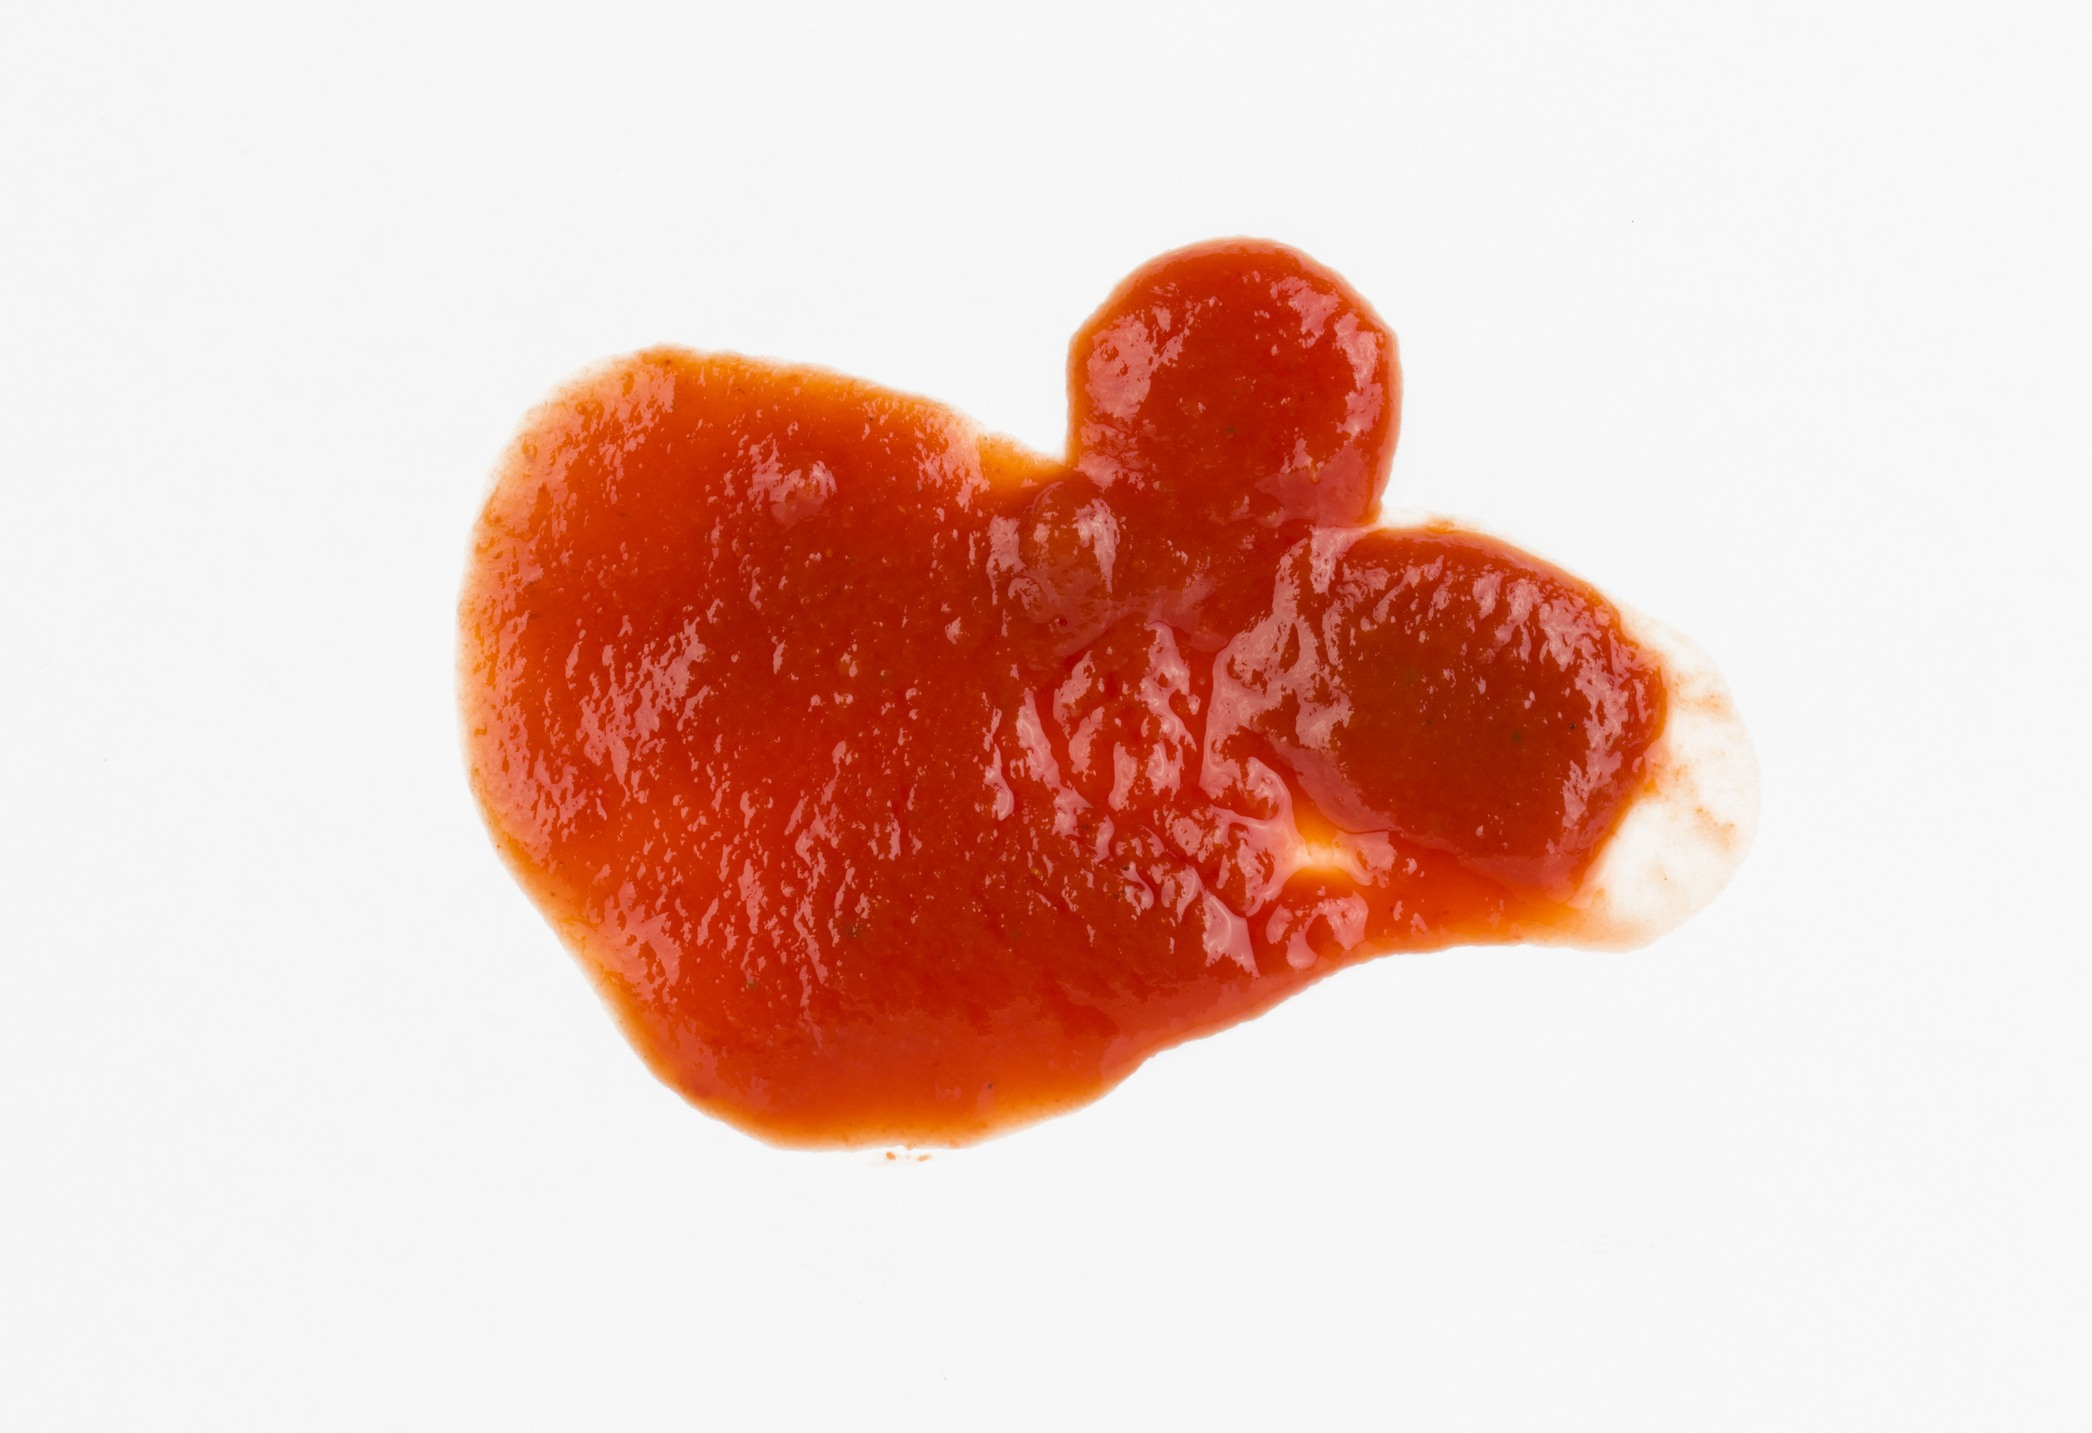 Ketchup or sauce stains.